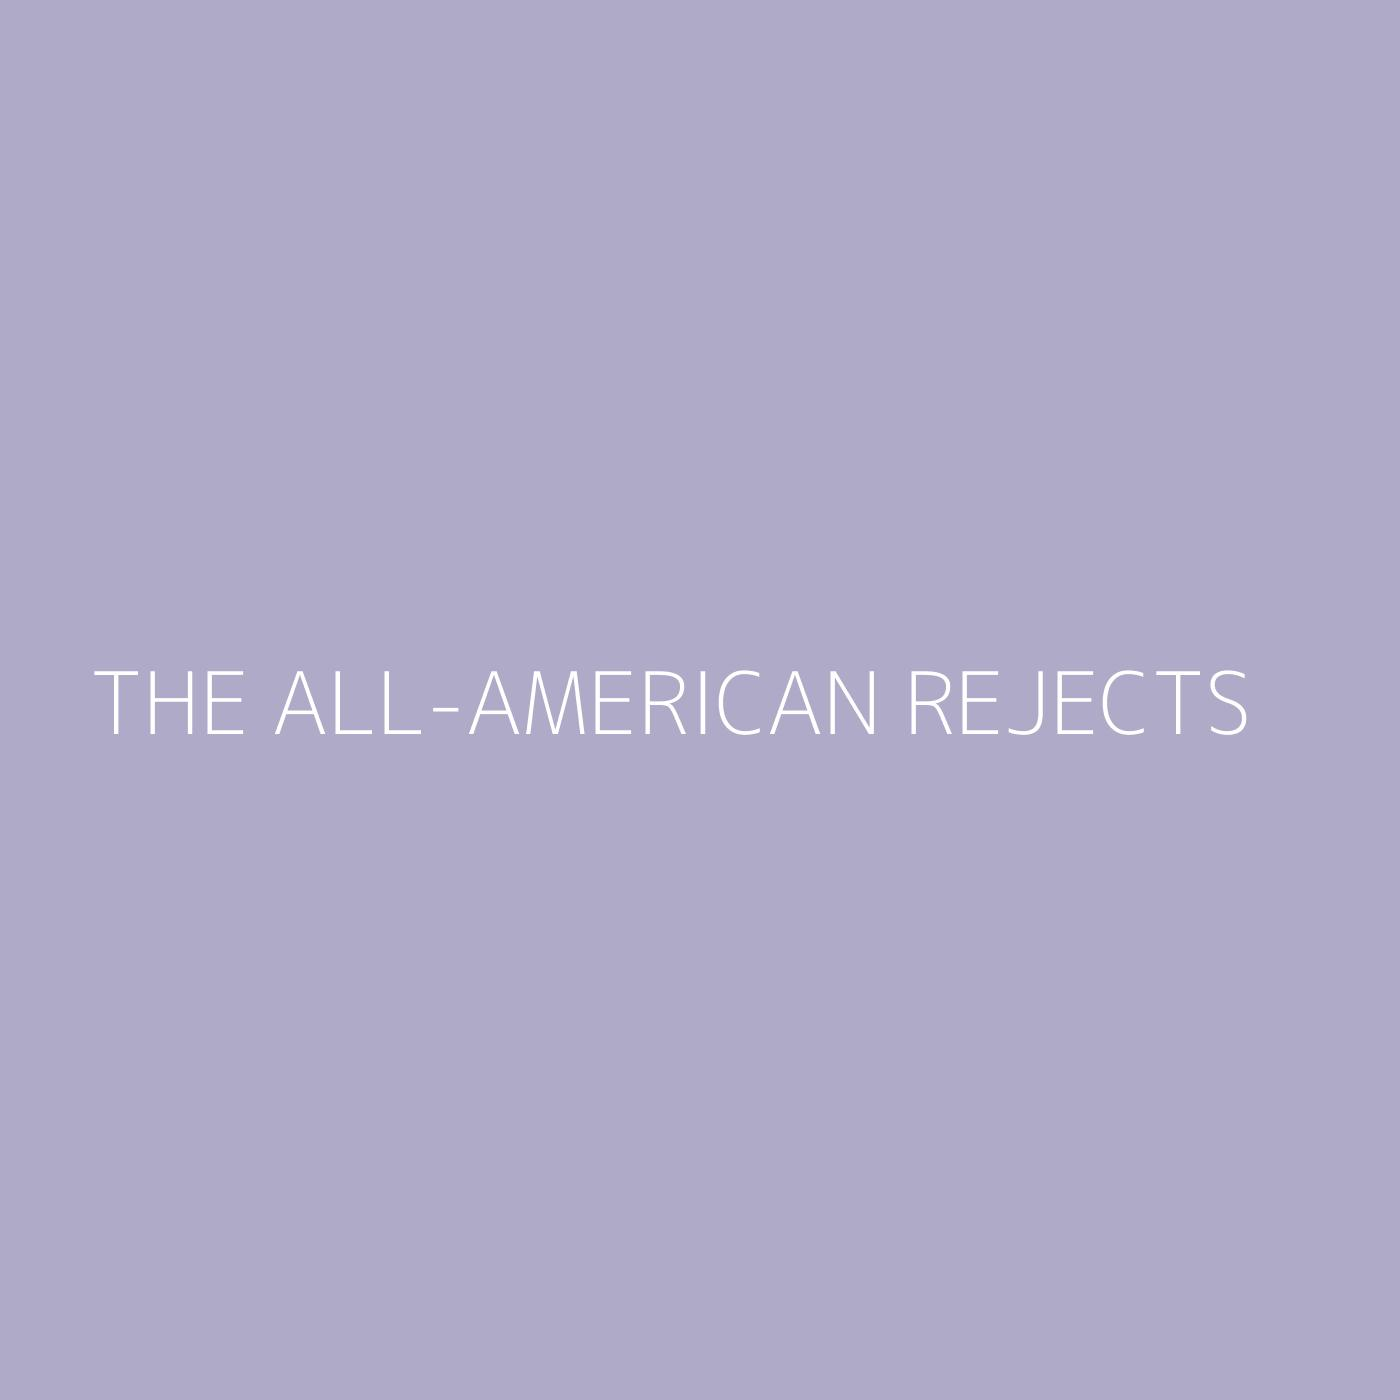 The All-American Rejects Playlist Artwork